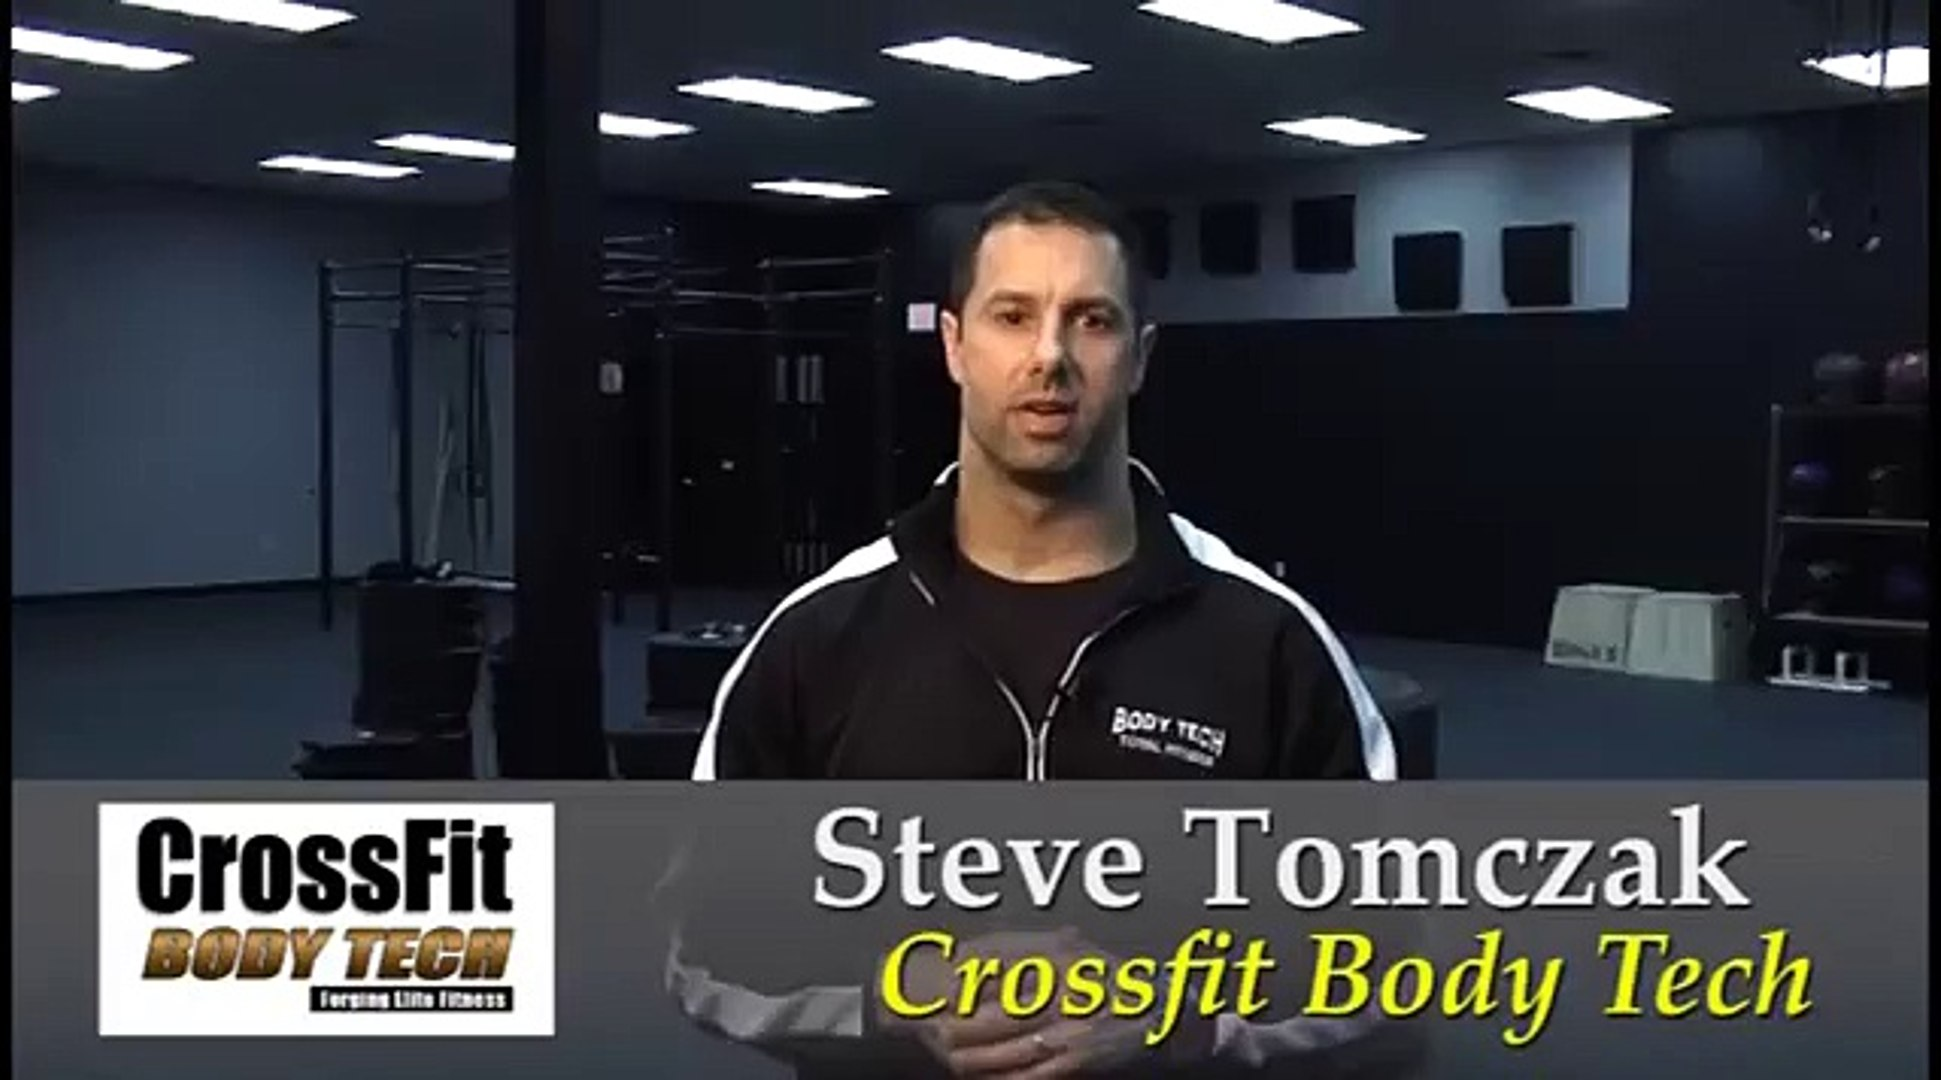 CrossFit Body Tech workouts Mokena IL l CrossFit Body Tech Mokena IL (708) 478-5054